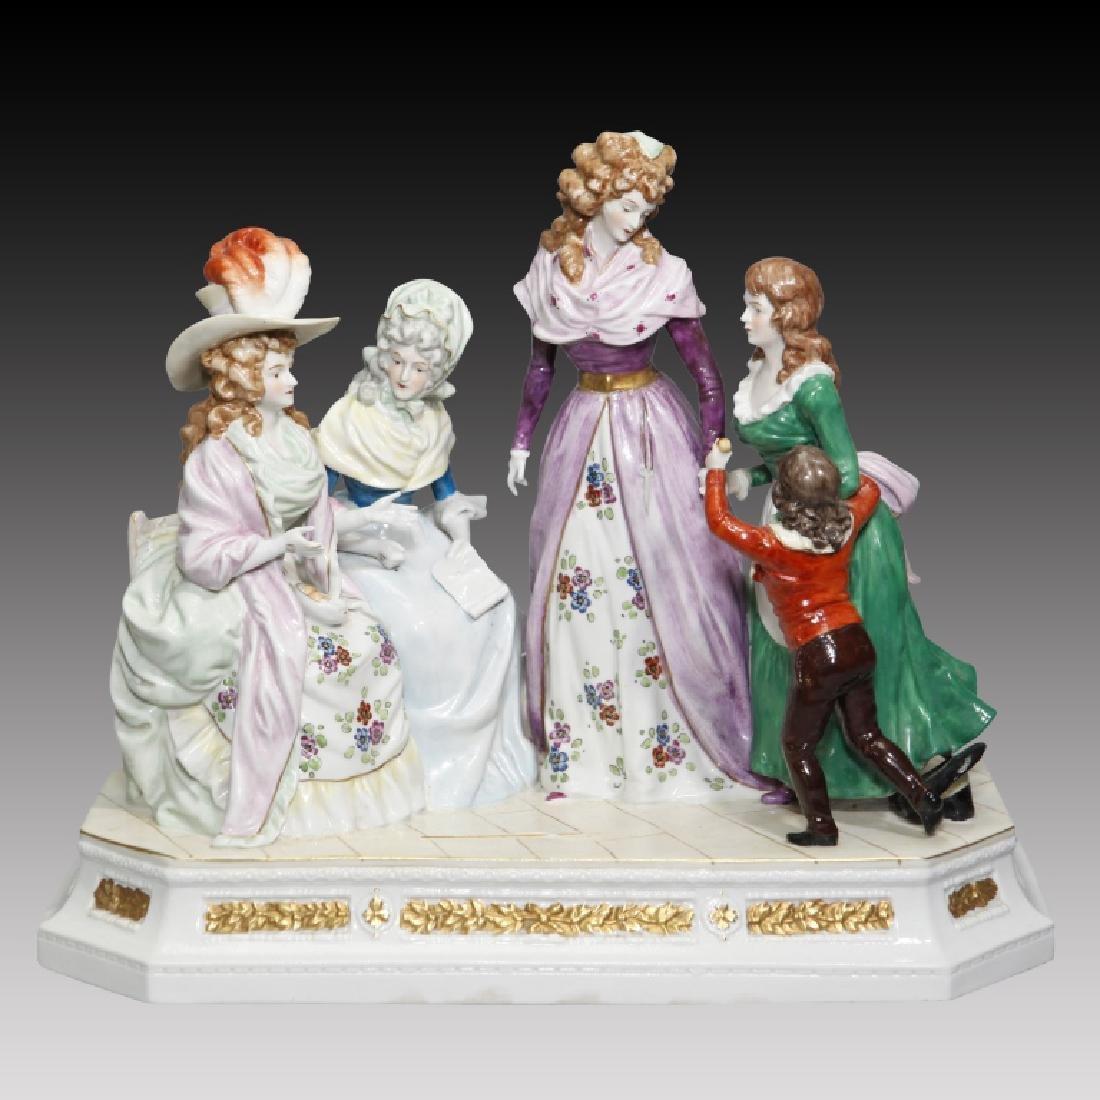 Figurine Grouping of 3 Women and Children